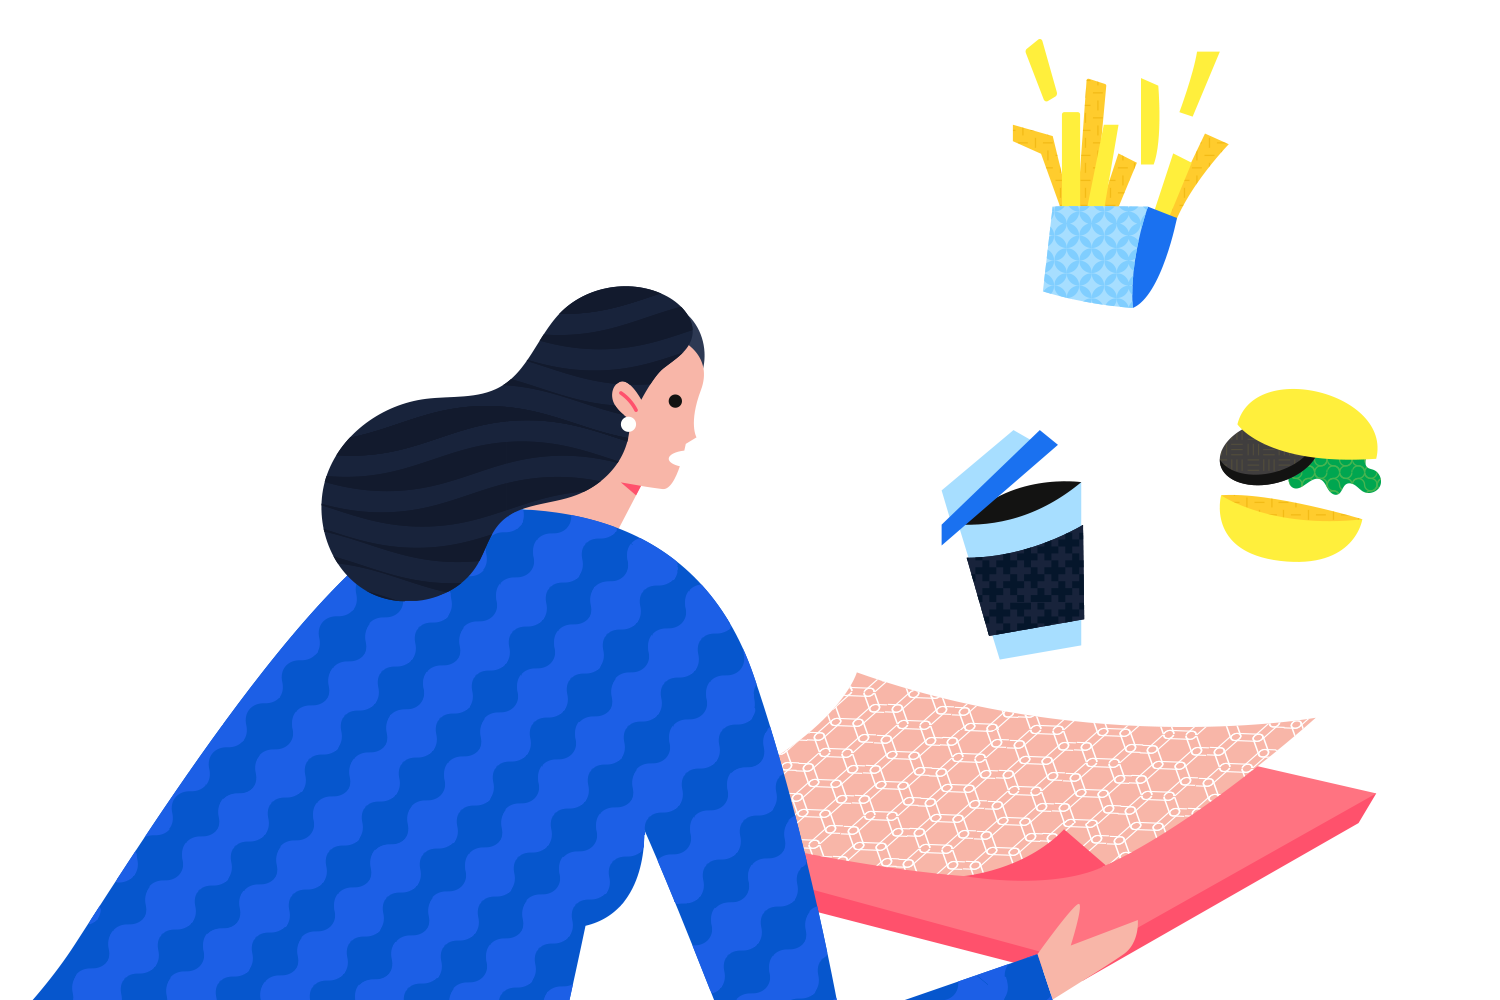 Flat illustration demonstrating ability to replace solid colors with patterns